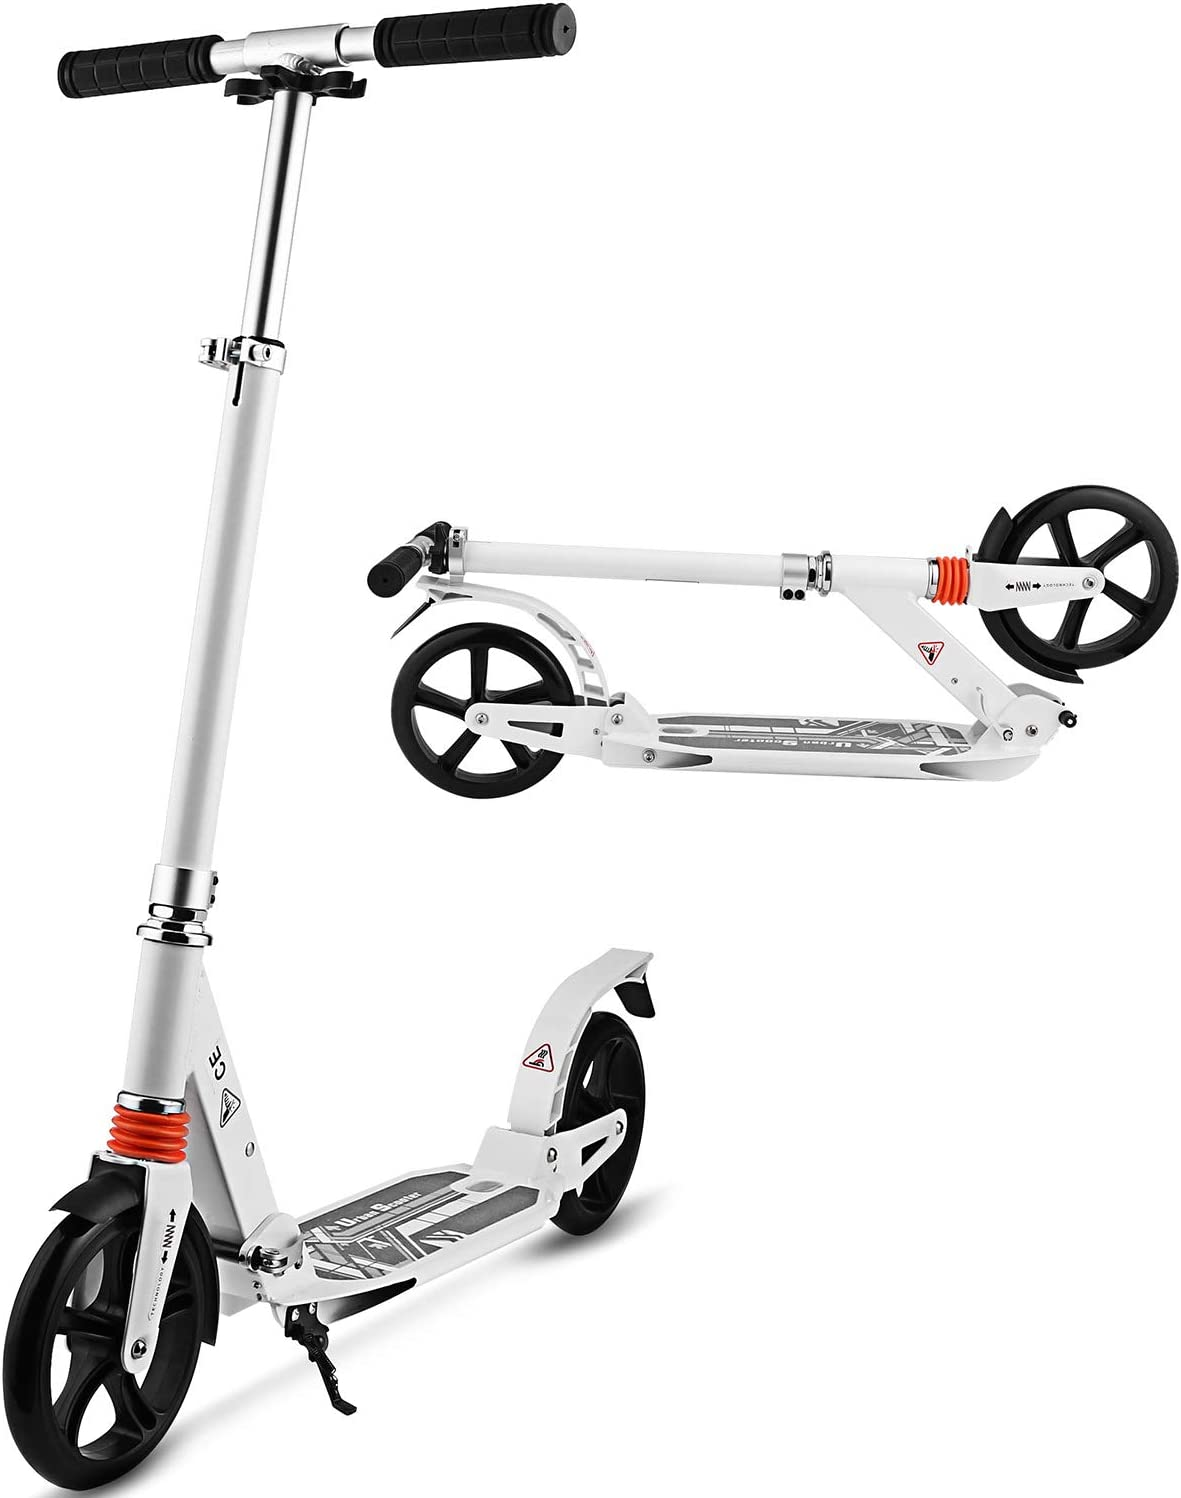 Jetson Saturn Folding 3-Wheel Kick Scooter with Light-Up Stem Deck, Lean-to-Steer Design with Sturdy Wide Deck Adjustable Height, for Kids 5 Up,